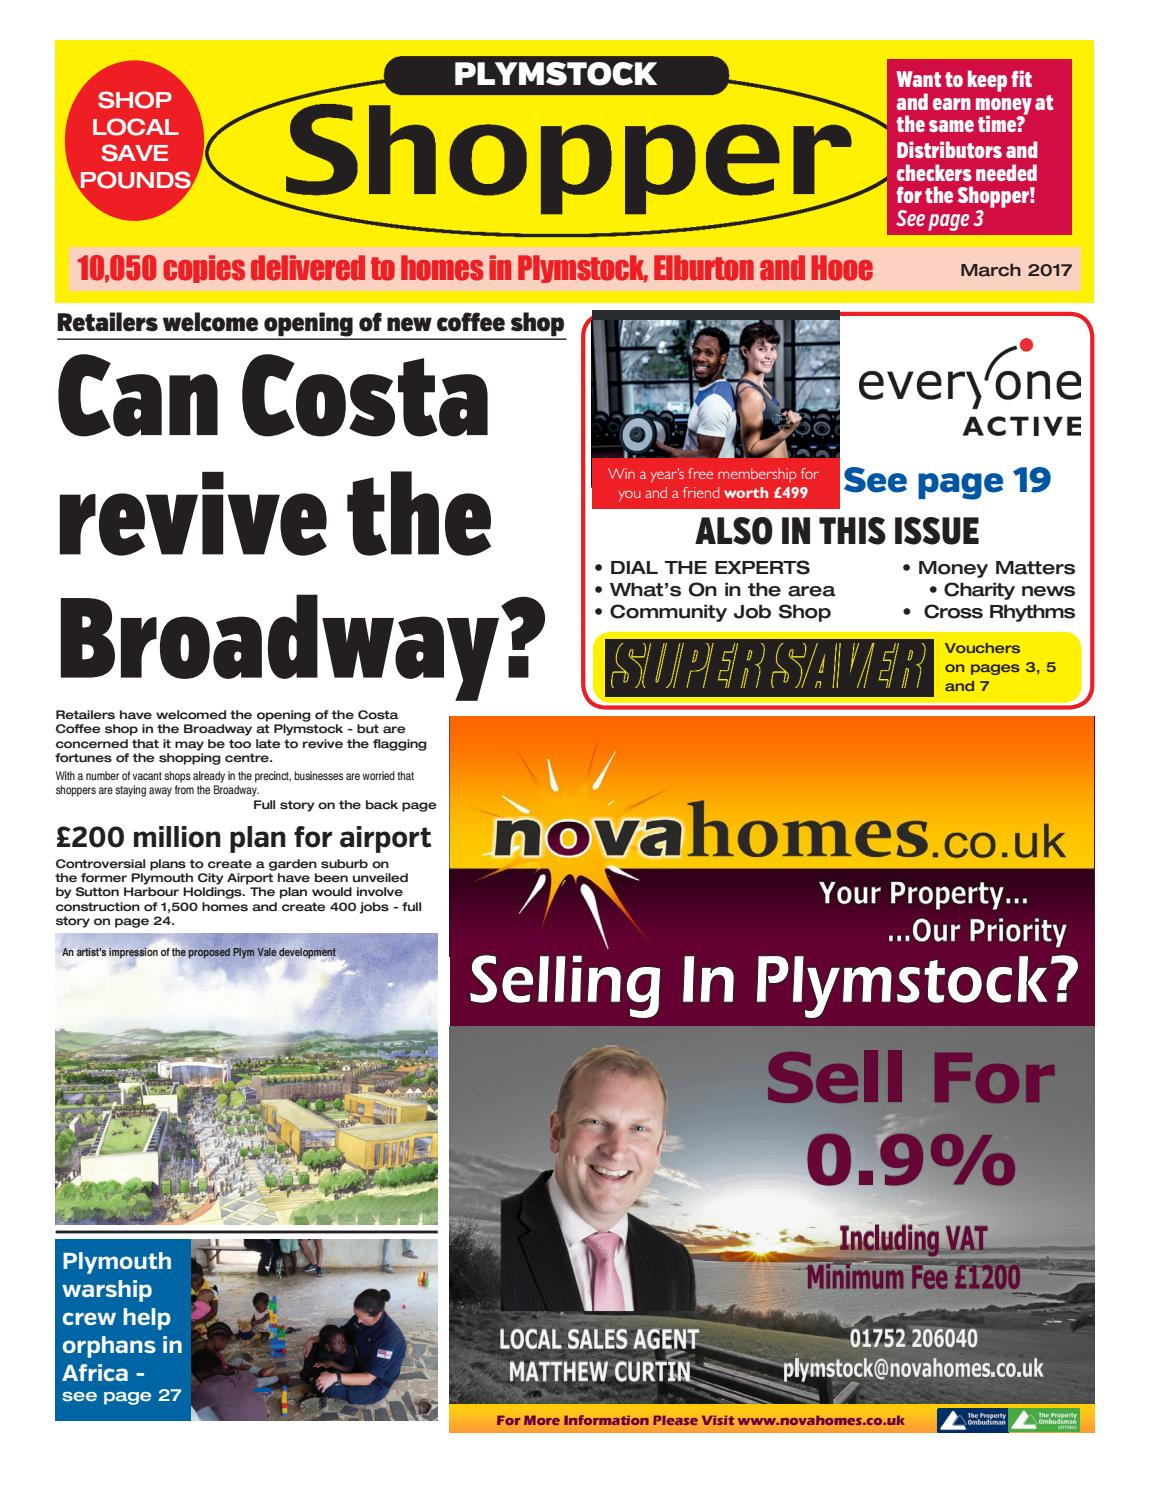 Plymstock shopper march 2017 by cornerstone vision issuu fandeluxe Choice Image